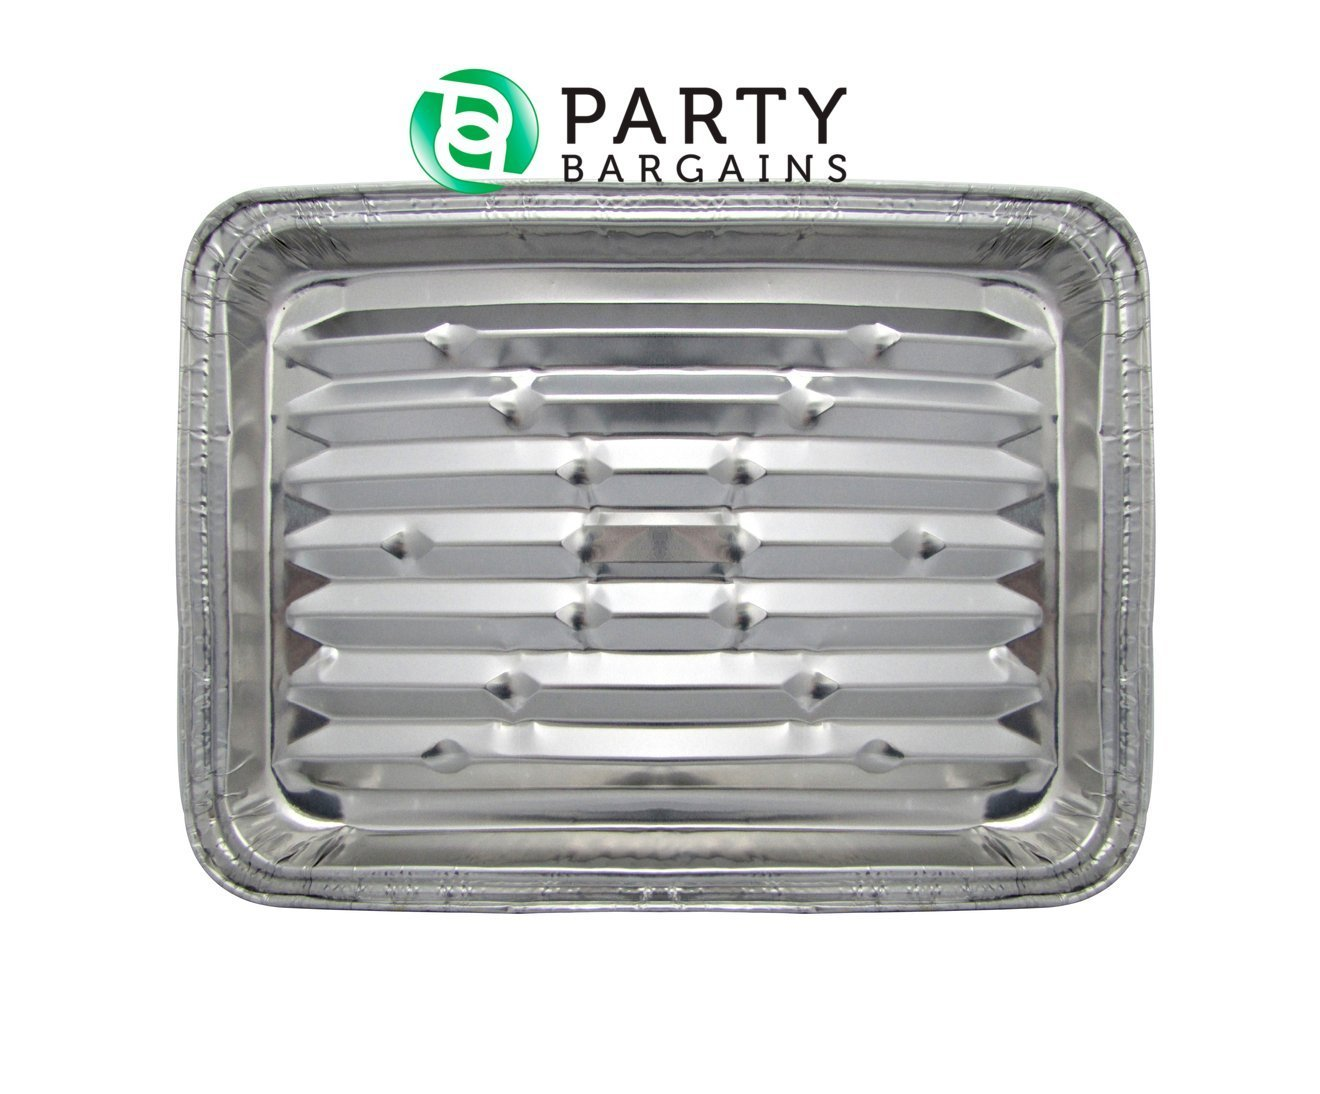 "Party Bargains Disposable Aluminum Broiler Baking Cooking Pan & Grill Liner, Sheets of Broiler Pans - Size 12 X 8 3/4"" X 1 1/ 